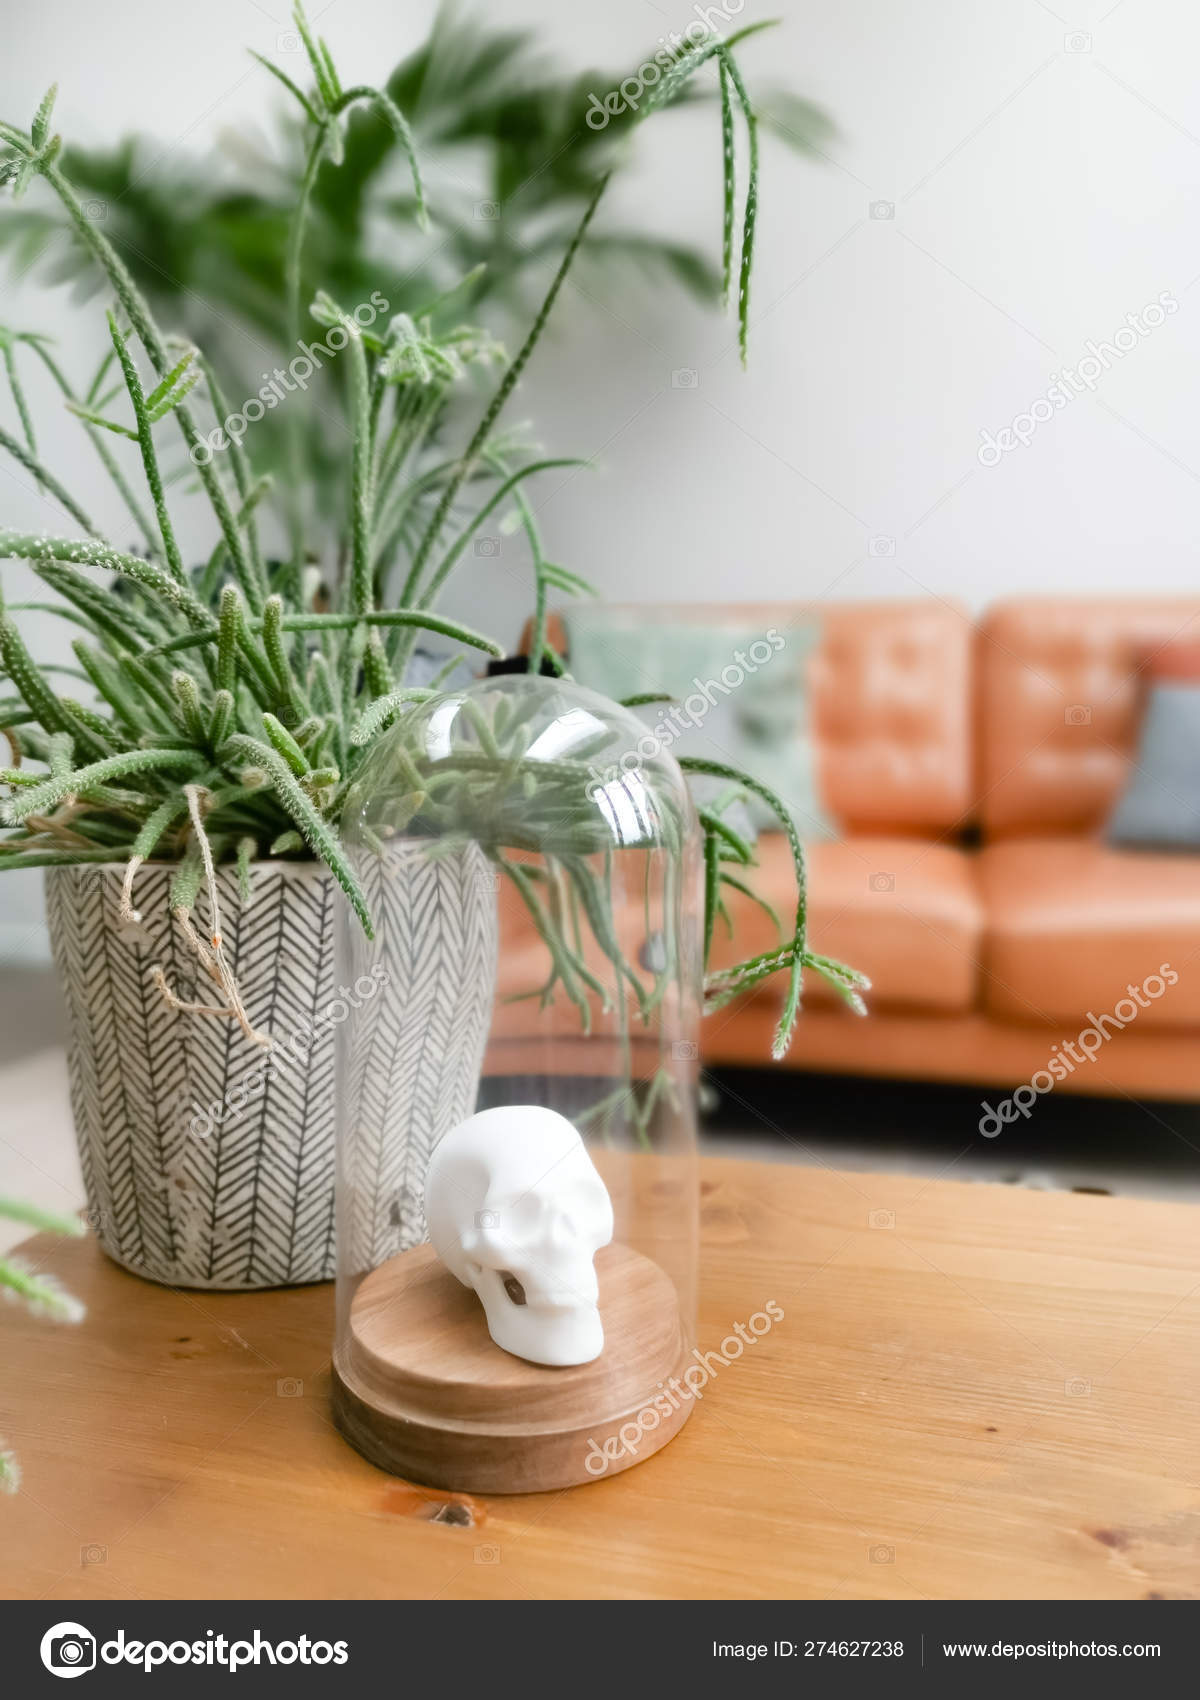 White Porcelain Animal Head In A Glass Bell Jar On A Wooden Coffee